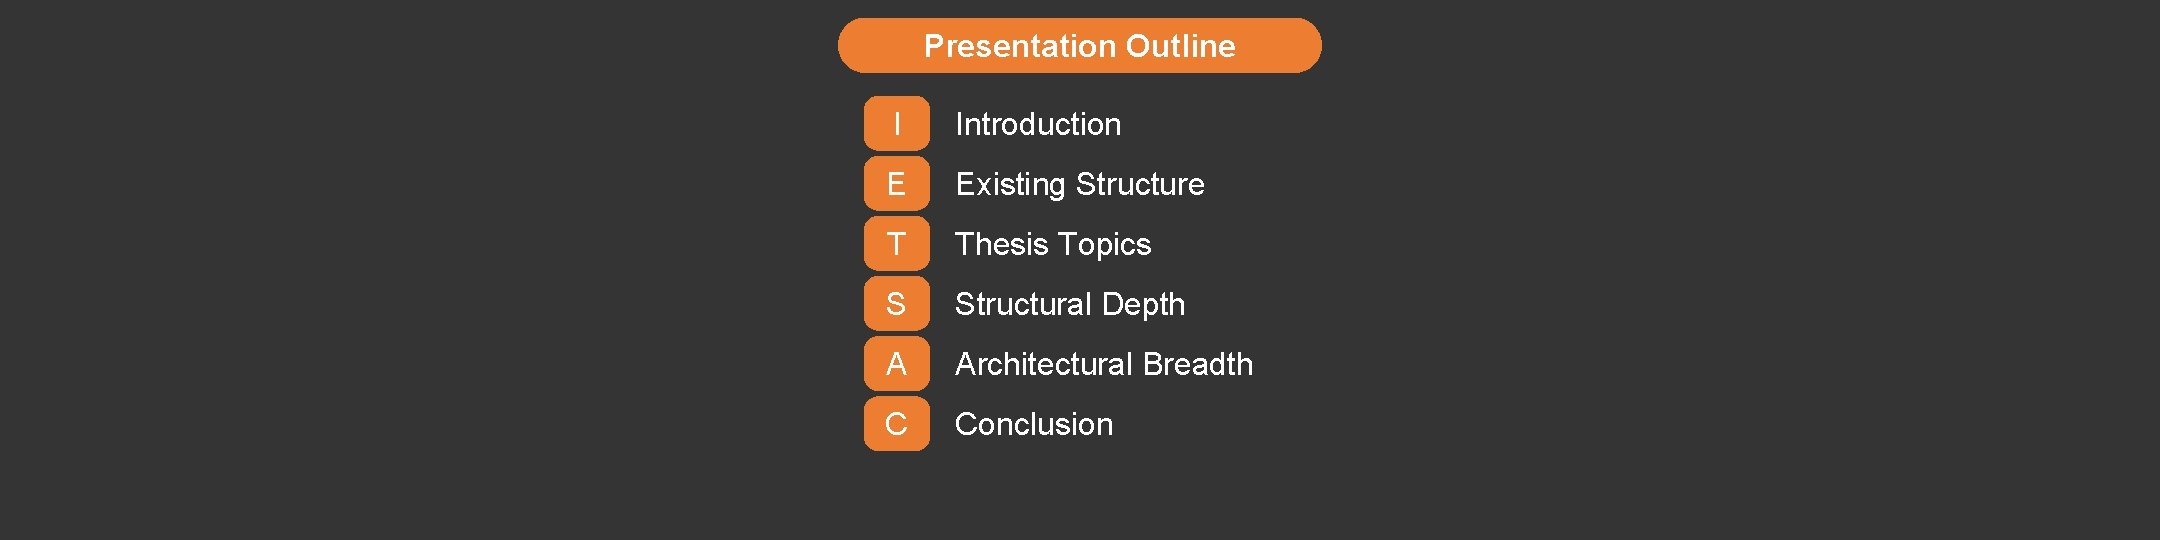 Presentation Outline I Introduction E Existing Structure T Thesis Topics S Structural Depth A